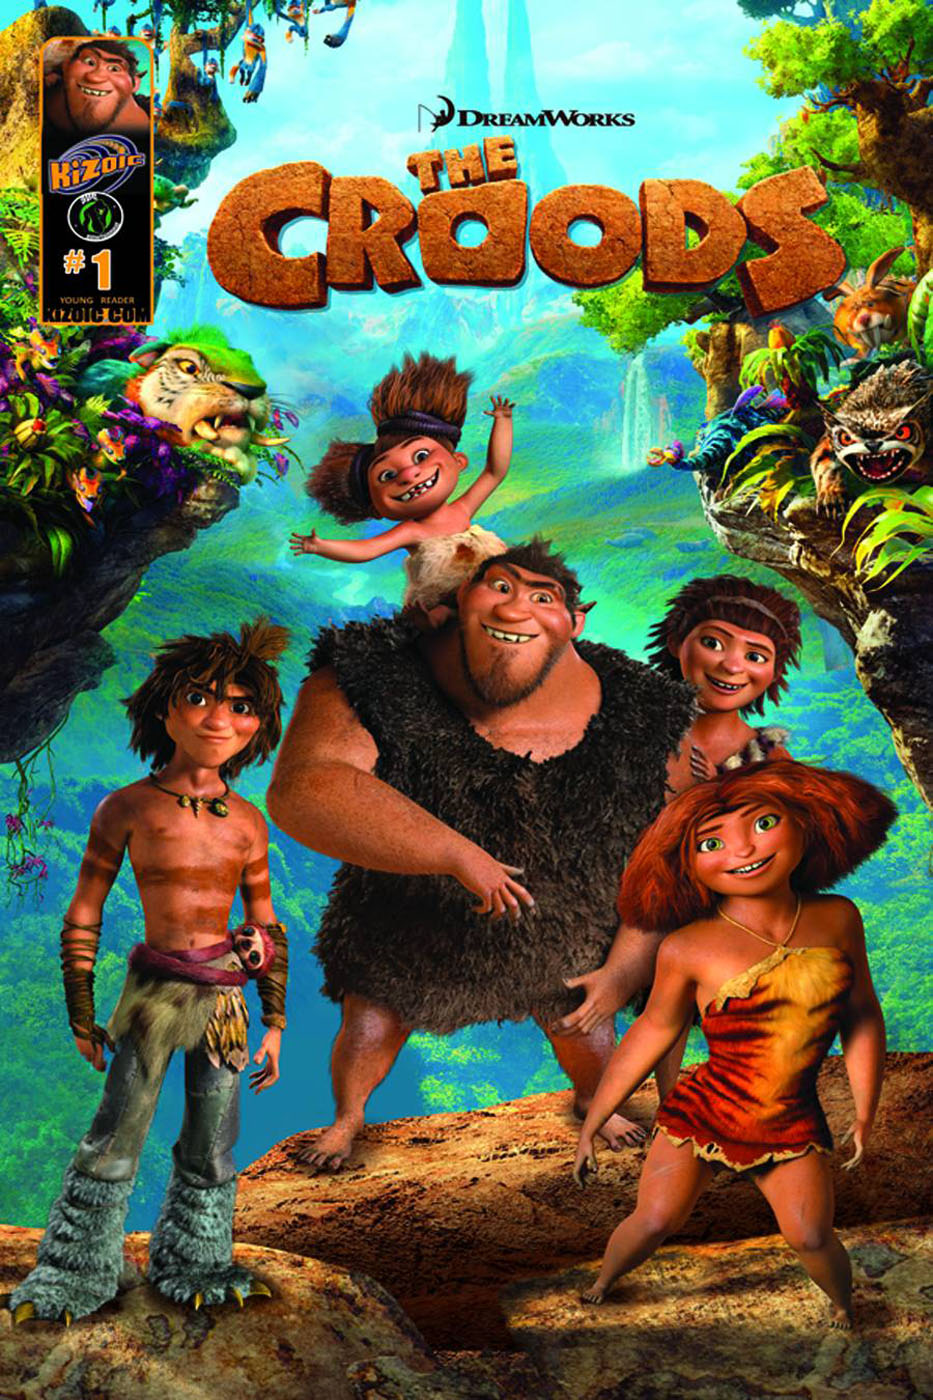 Watch Movie The Croods Full Streaming